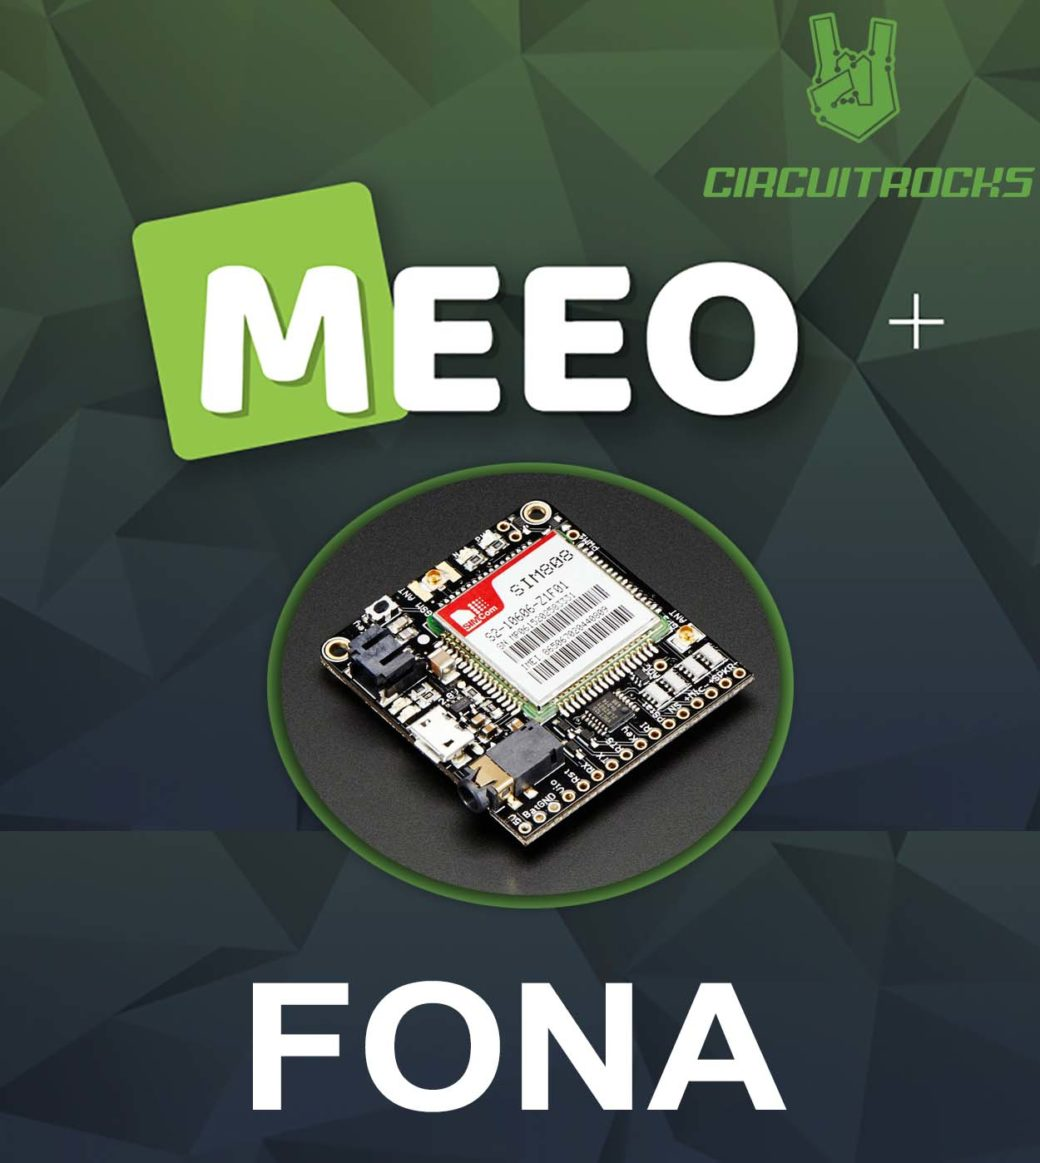 Meeo and FONA = ❤️ - LEARN @ CIRCUITROCKS